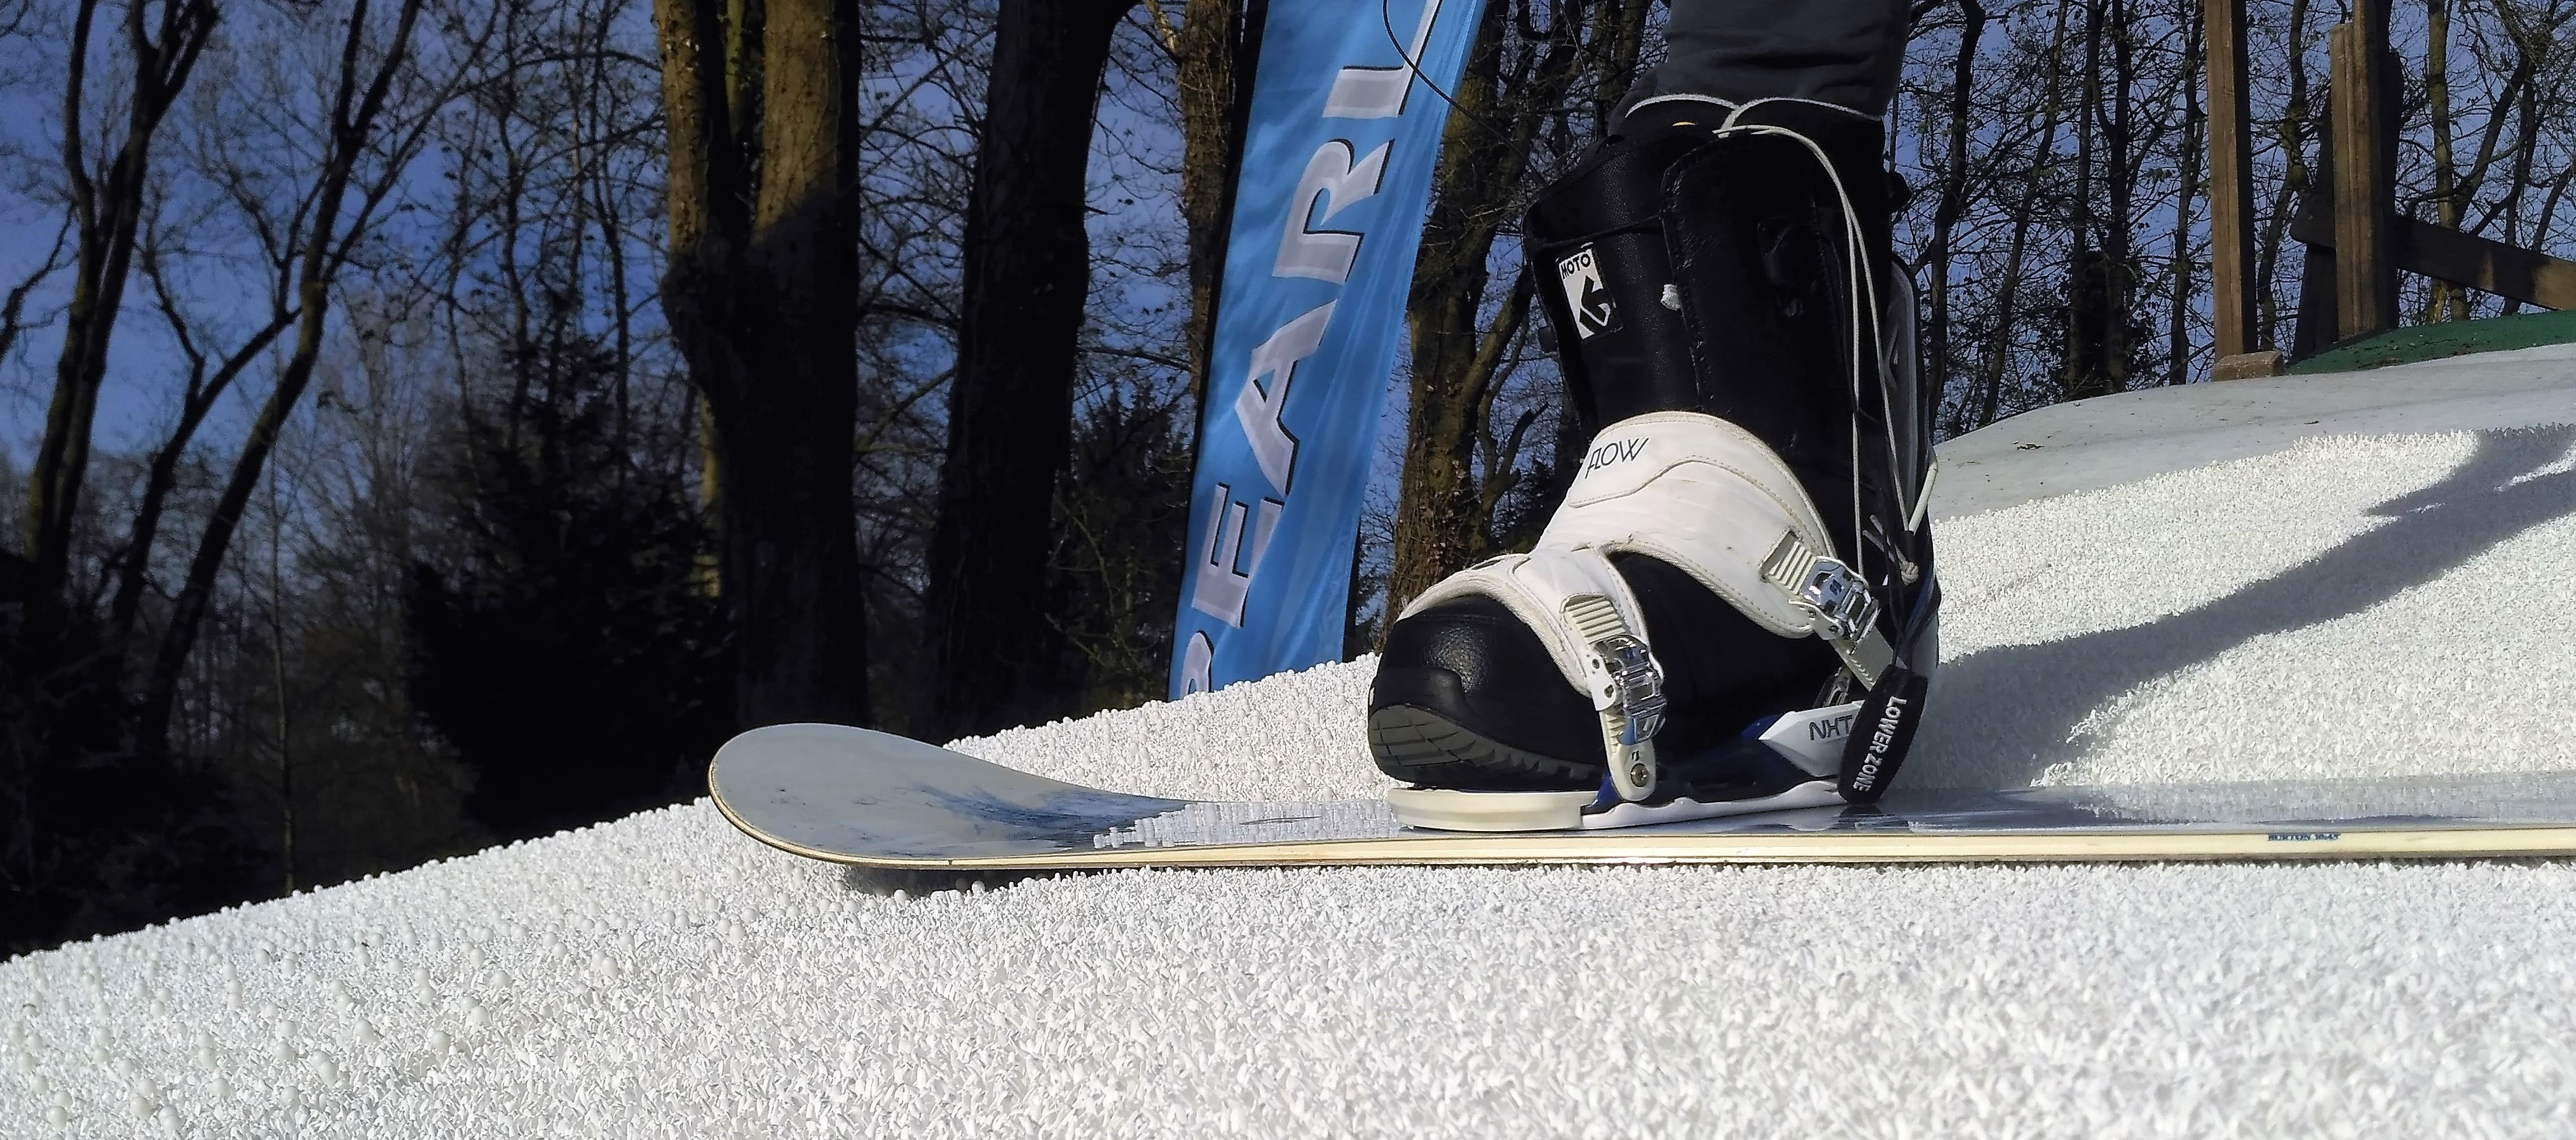 Dreamsnow: to learn your first steps on skiing and snowboarding